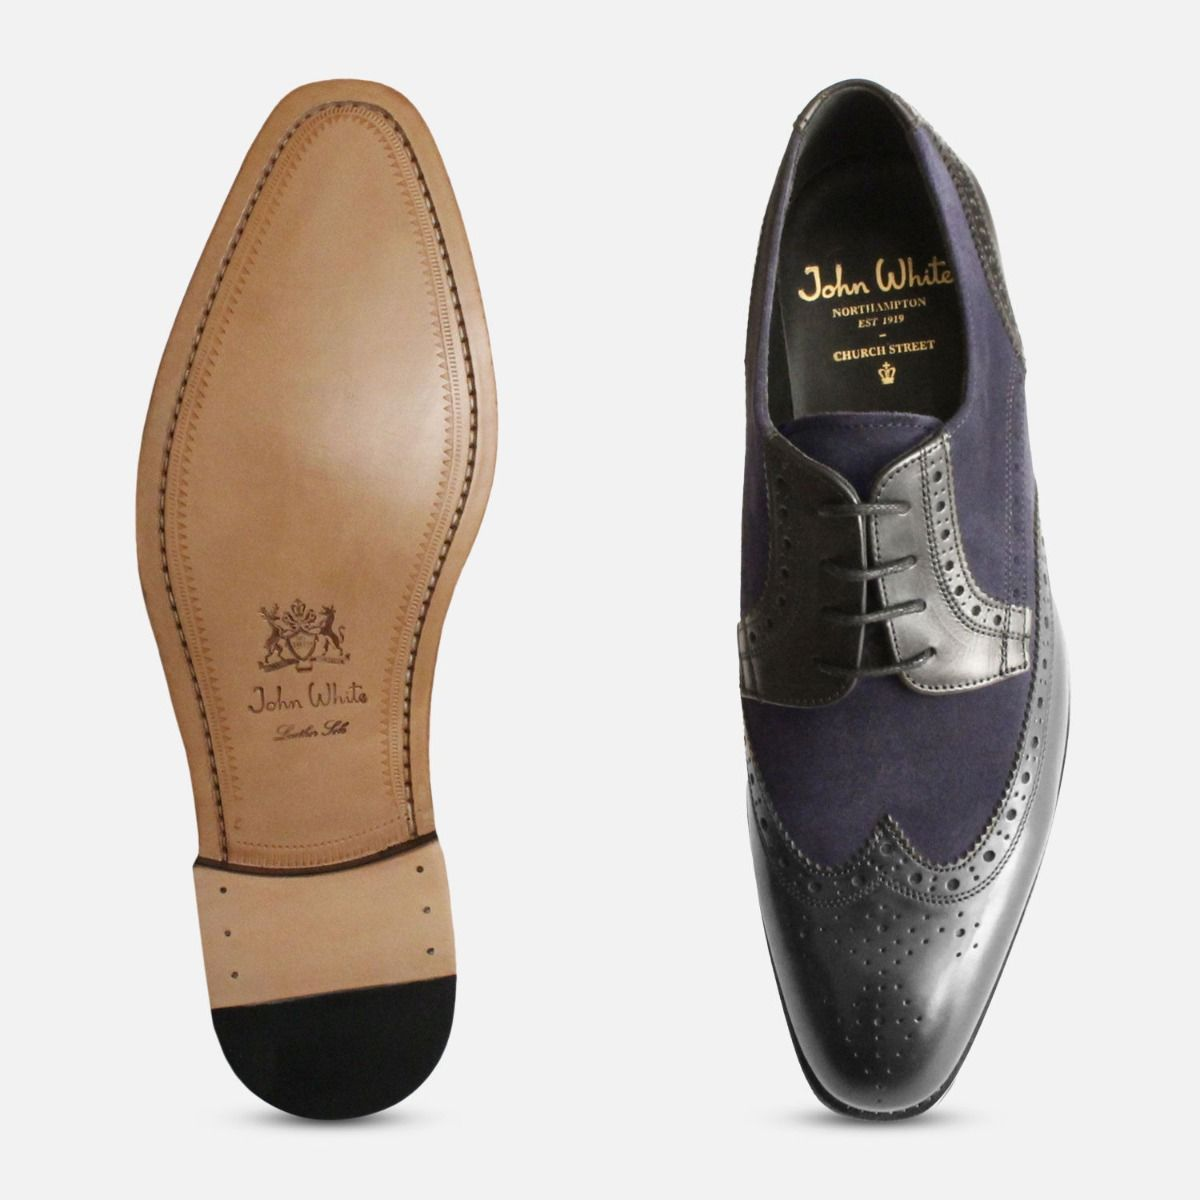 Spectator Brogues in Black & Navy by John White Shoes